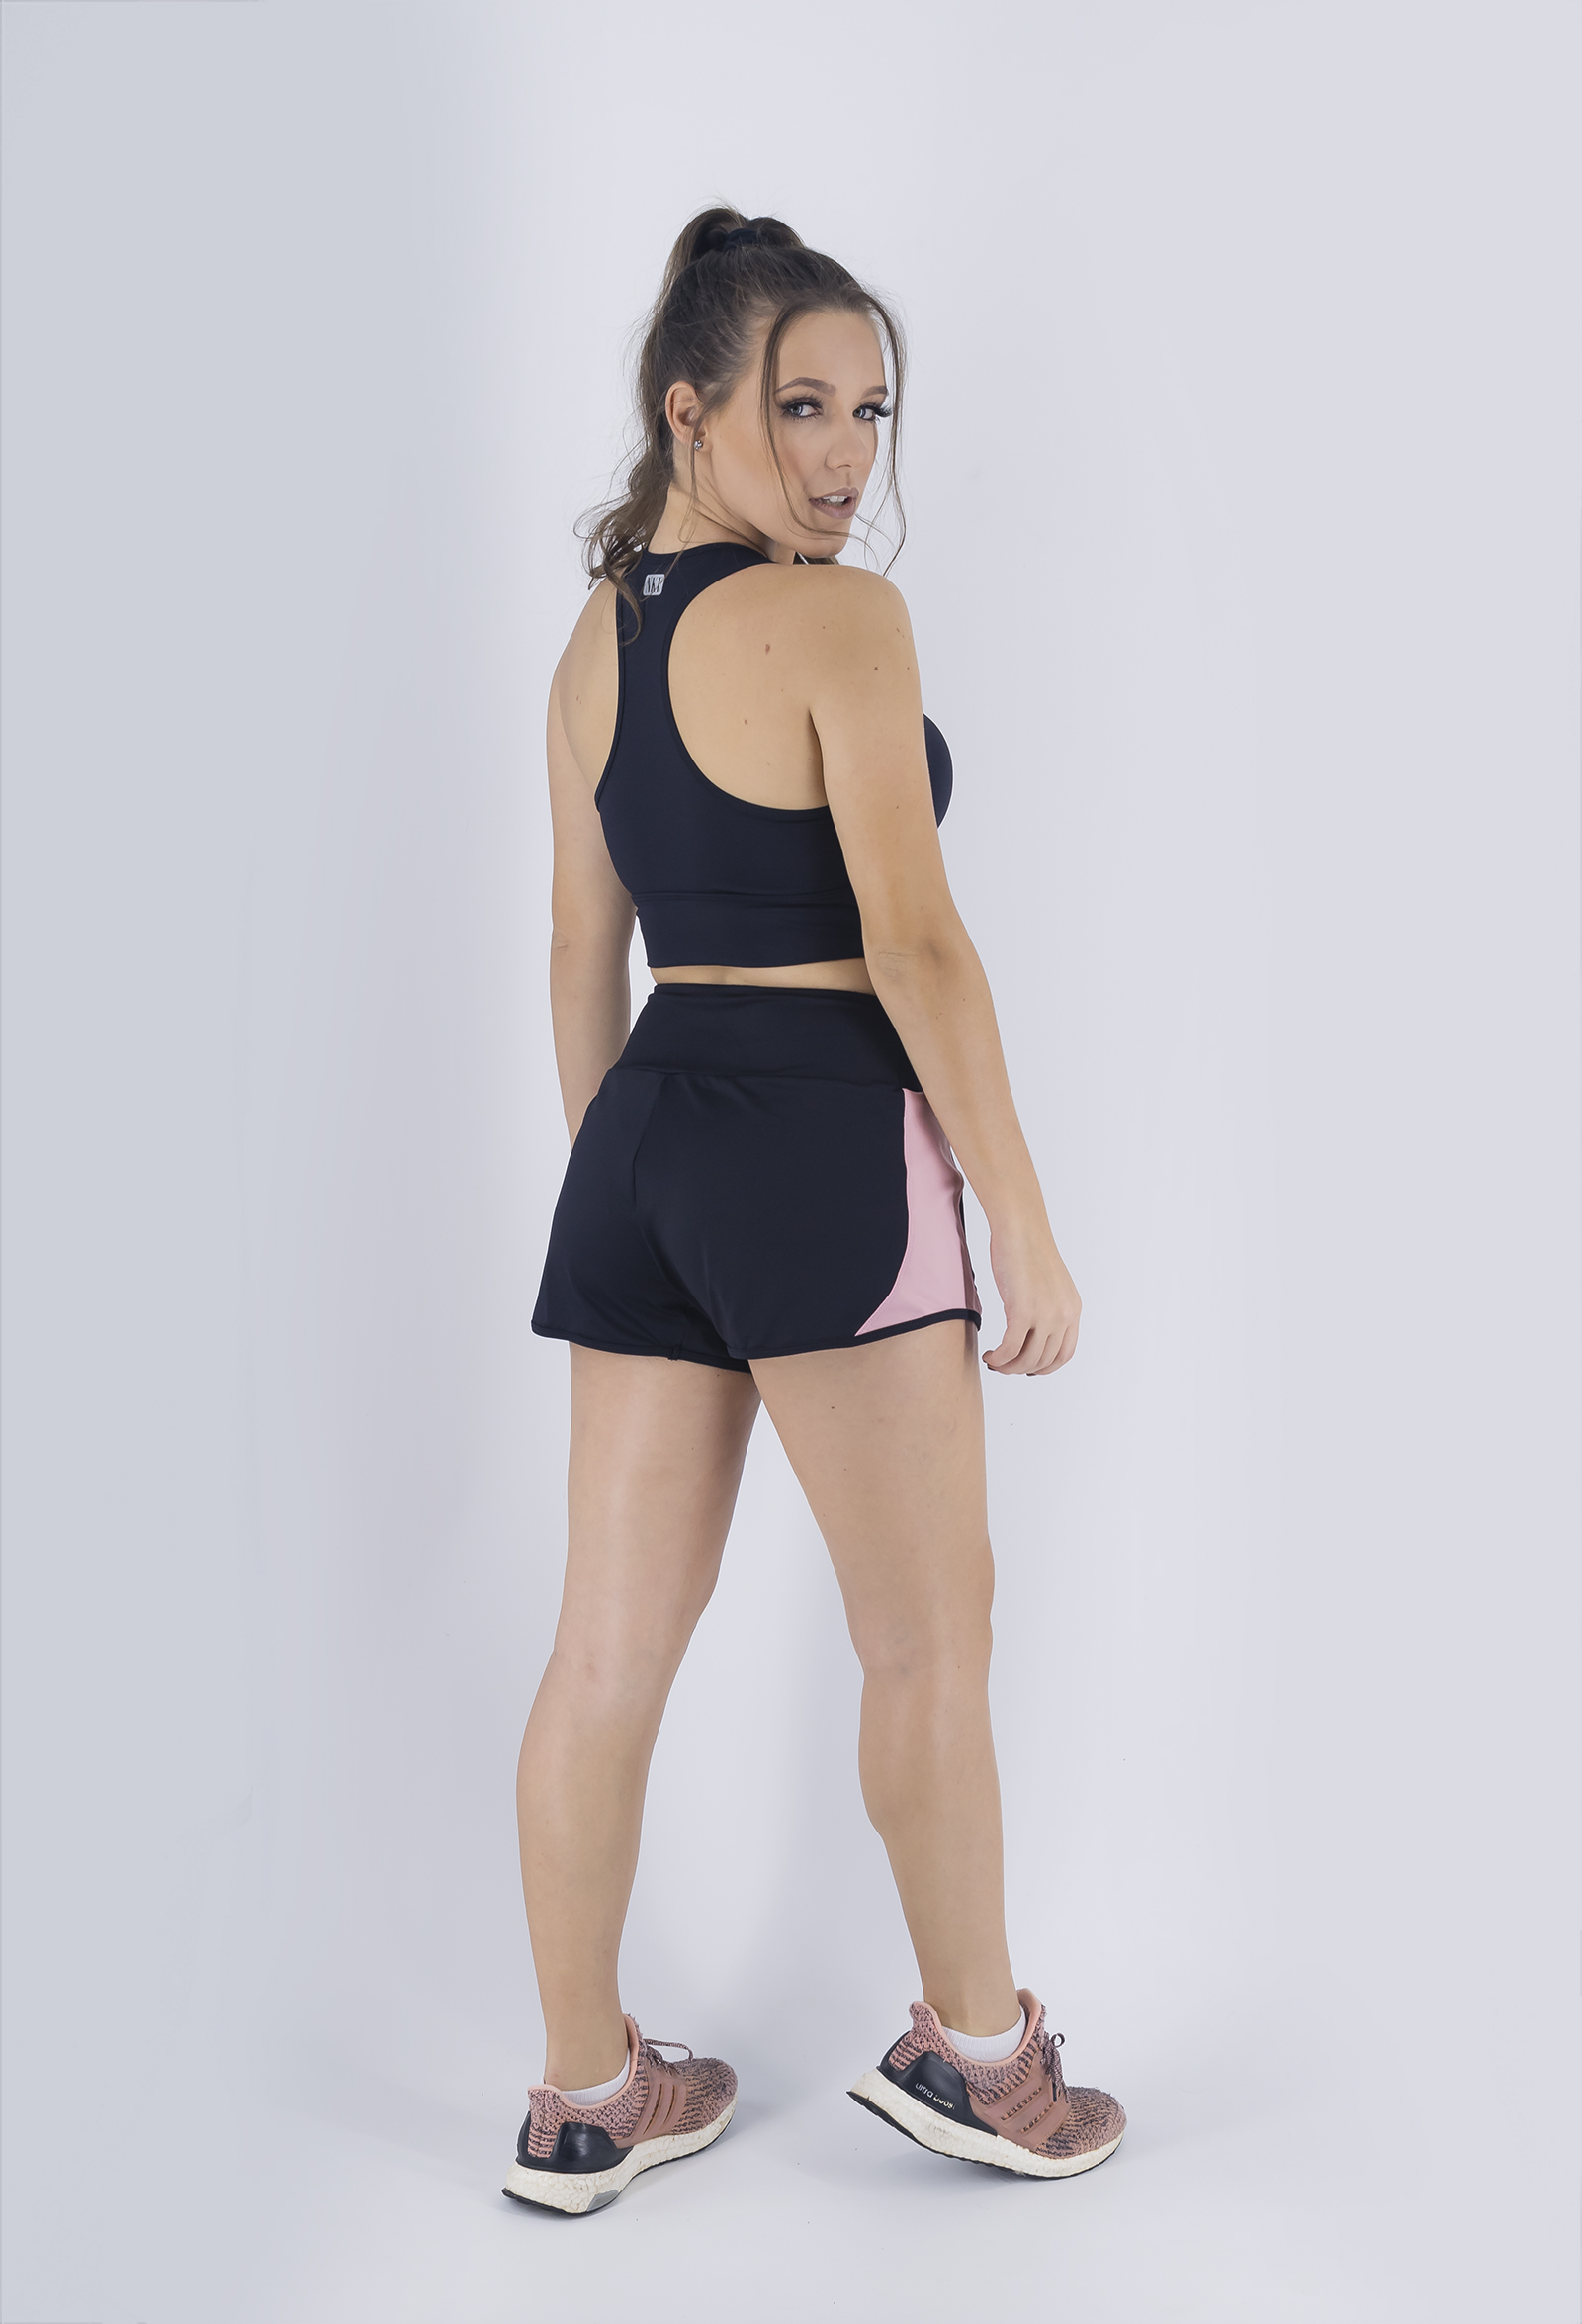 Cropped Lead Preto, Coleção Just For You - NKT Fitwear Moda Fitness